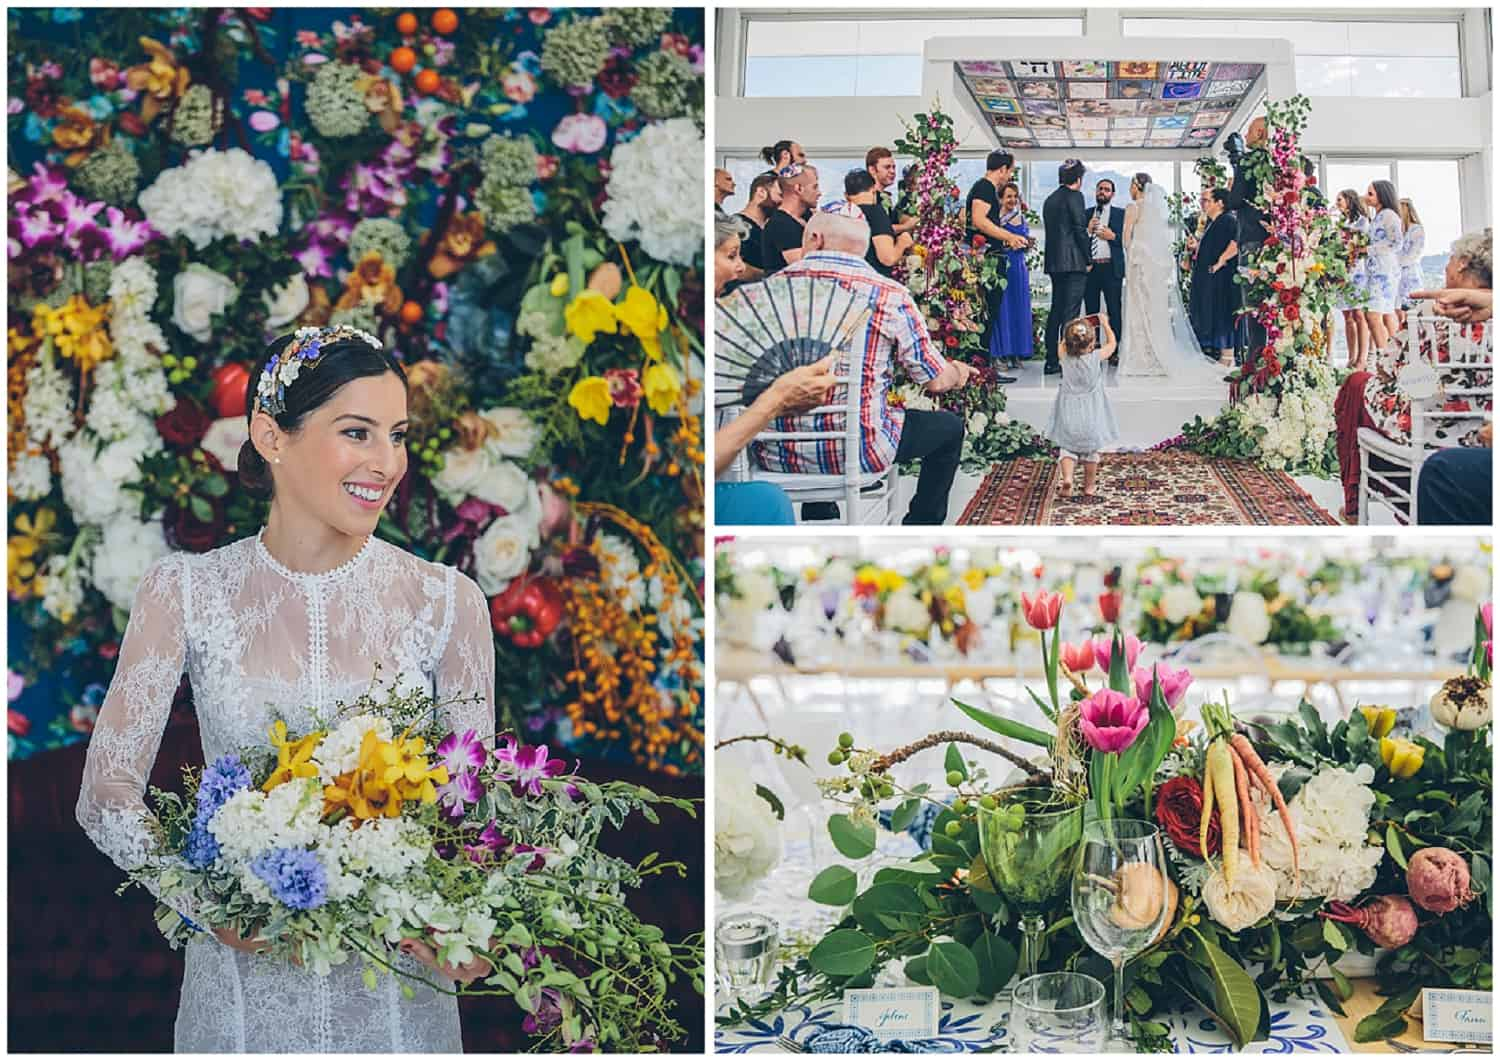 Jewish wedding, Cape Town wedding, Mr & Mrs Unique, Shanna Jones, colourful weddings